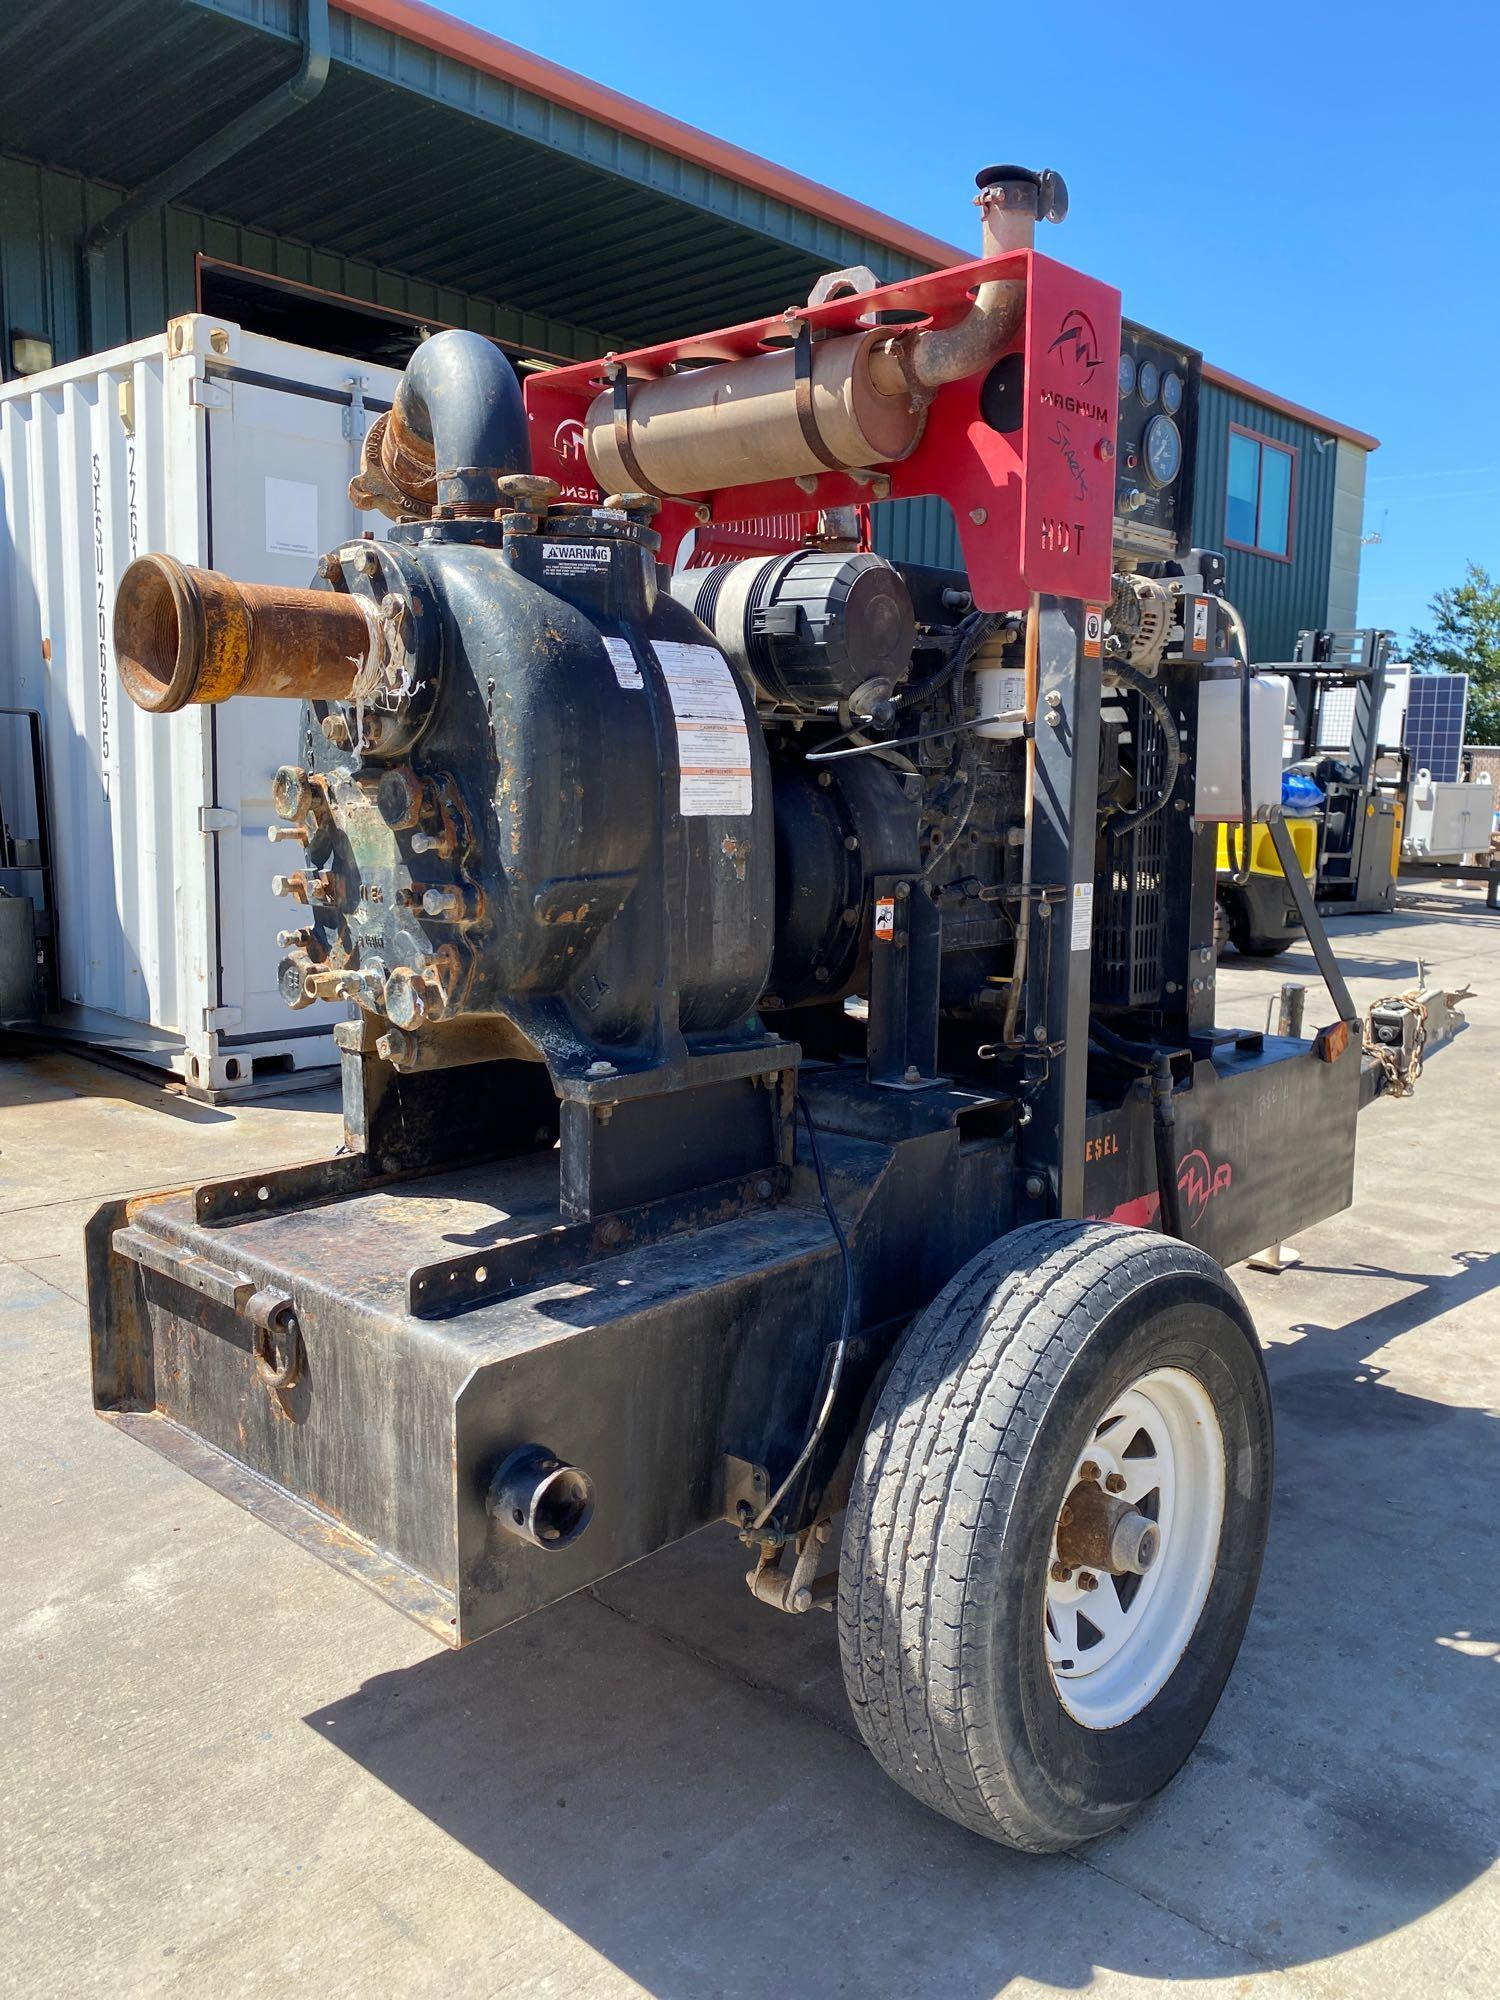 TRAILER MOUNTED MAGNUM 4 INCH DIESEL PUMP, RUNS AND OPERATES - Image 6 of 9